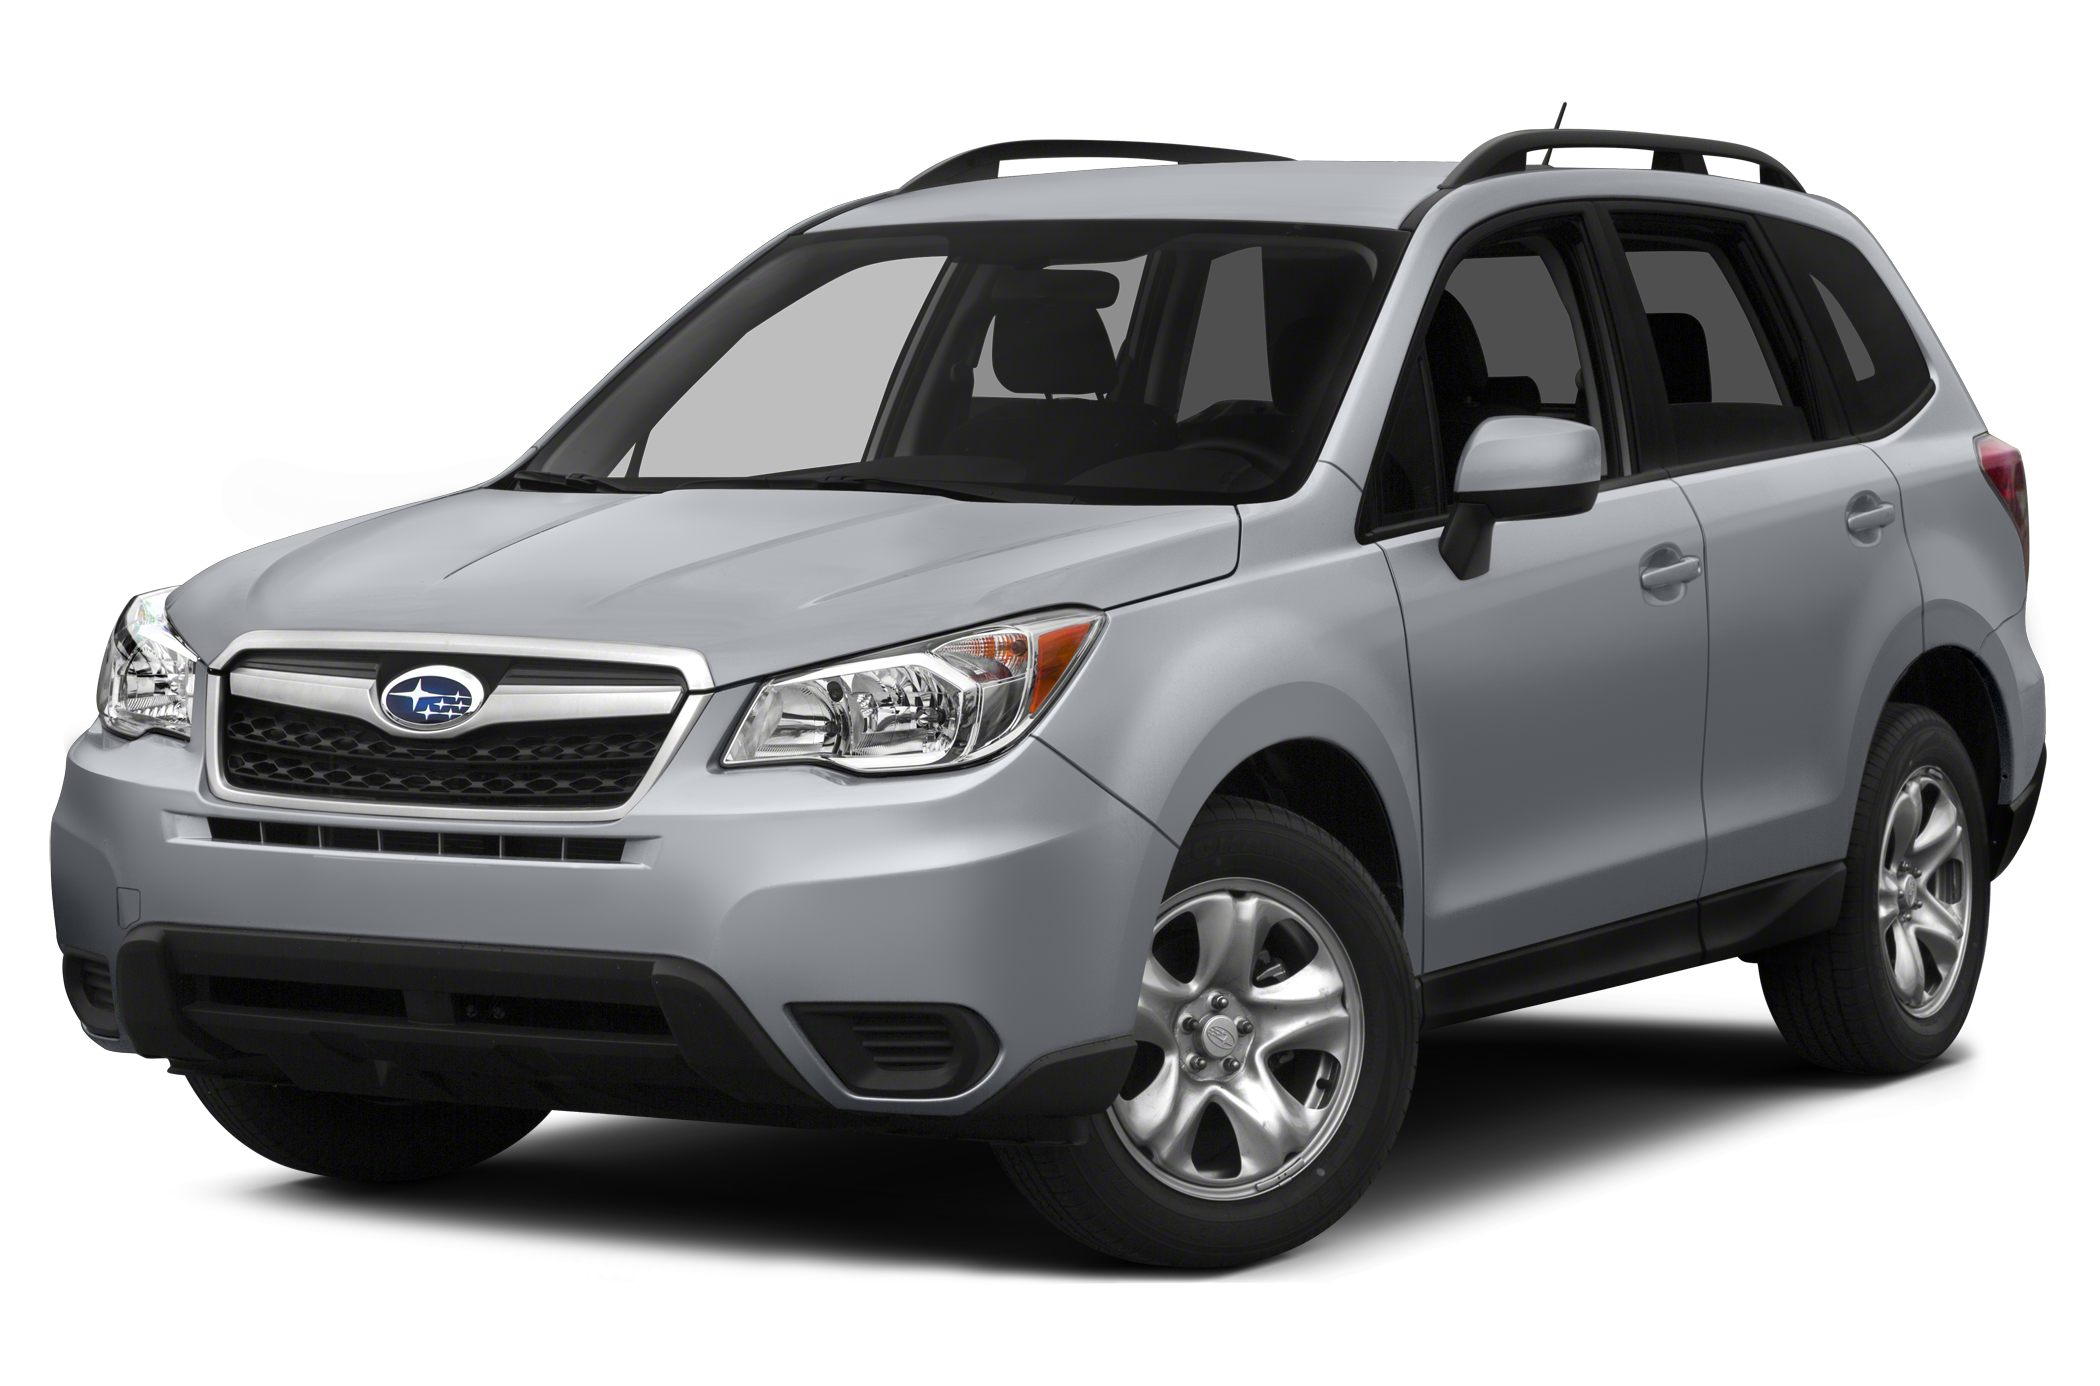 2015 Subaru Forester 2.5i SUV for sale in Chandler for $24,045 with 0 miles.